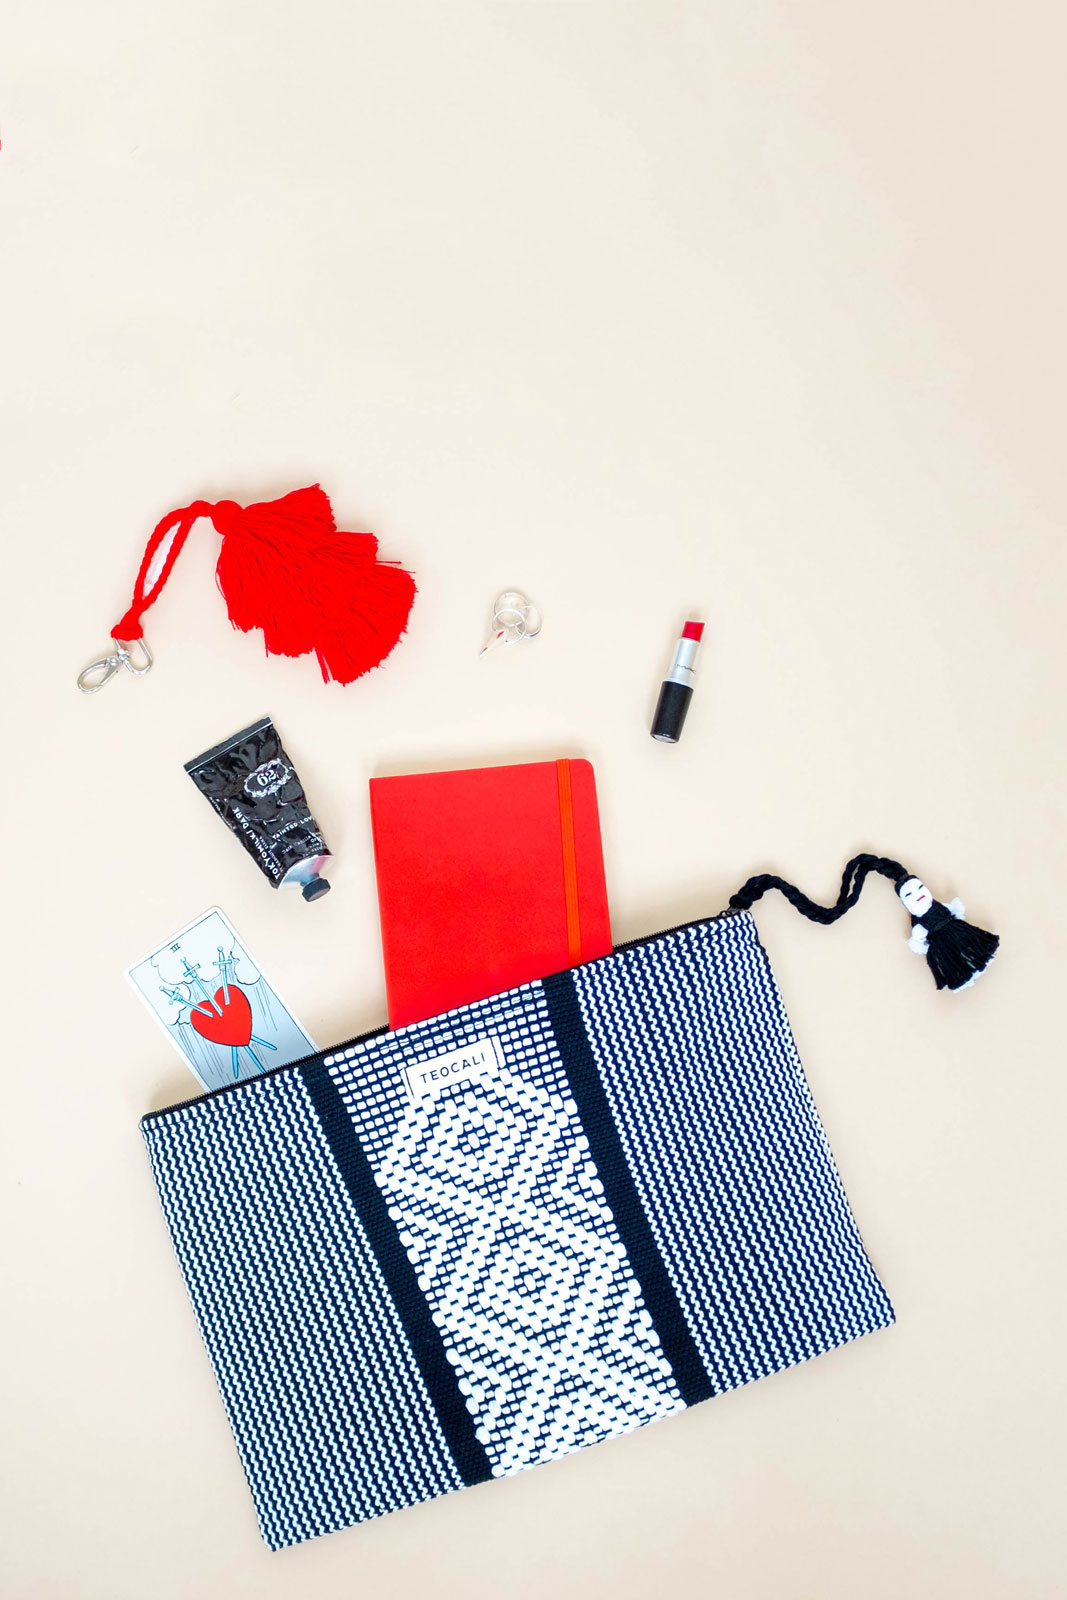 Flatlay of woven bag with lipstick, tarot card, etc, spilling out.